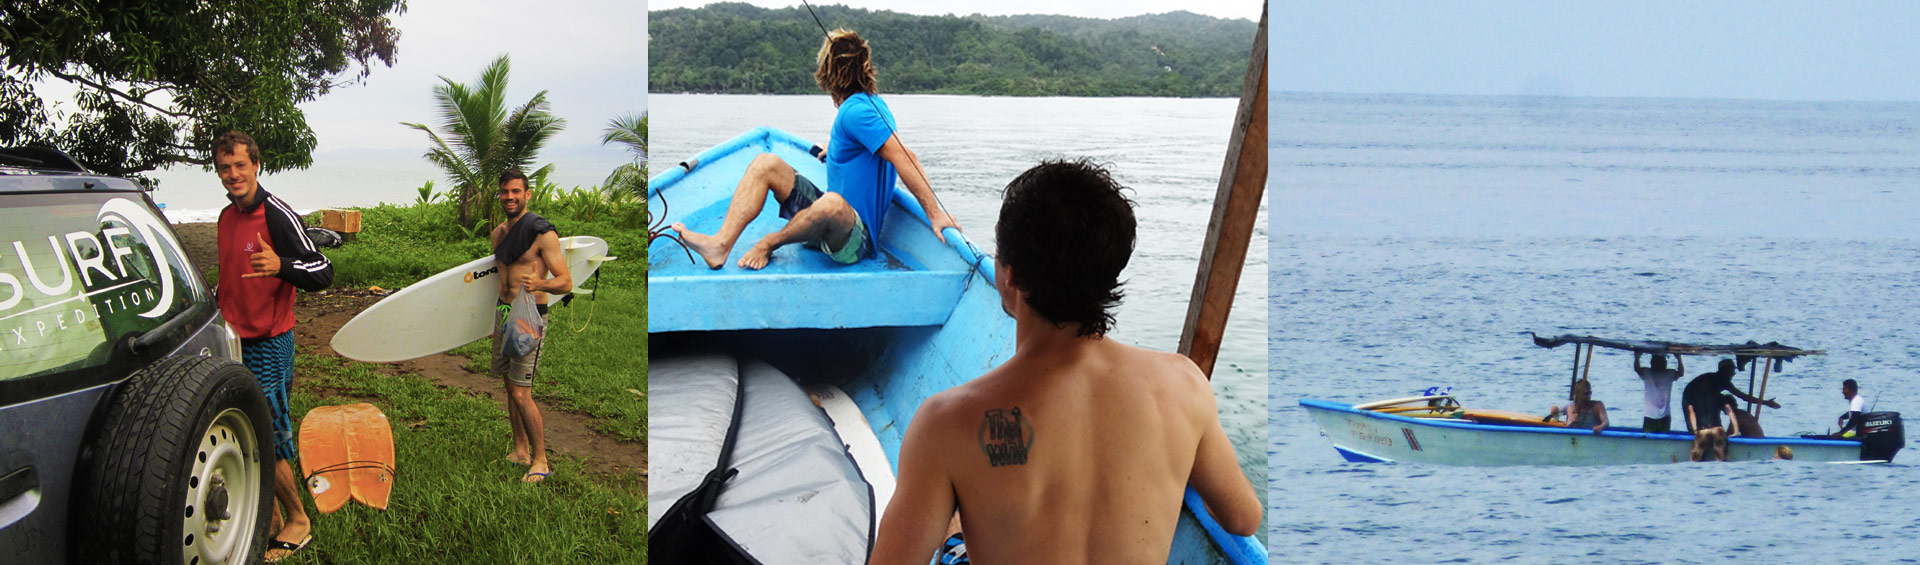 costa-rica-surf-camp-boat-trip-surf-expedition